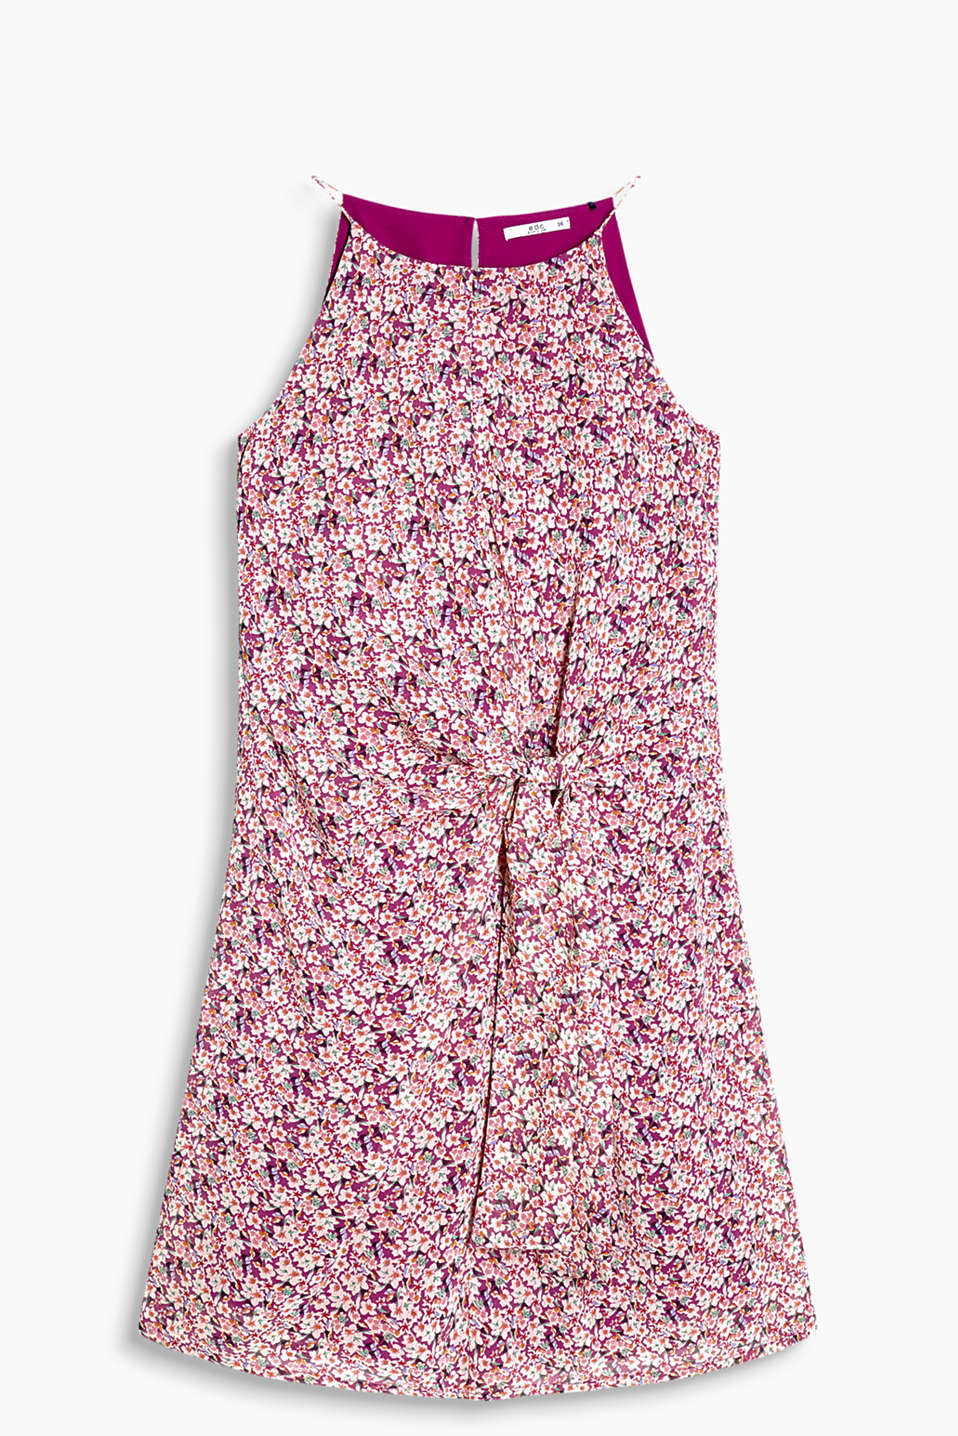 Crêpe dress with an opaque lining with a sweet floral print and knotted detail at the waist